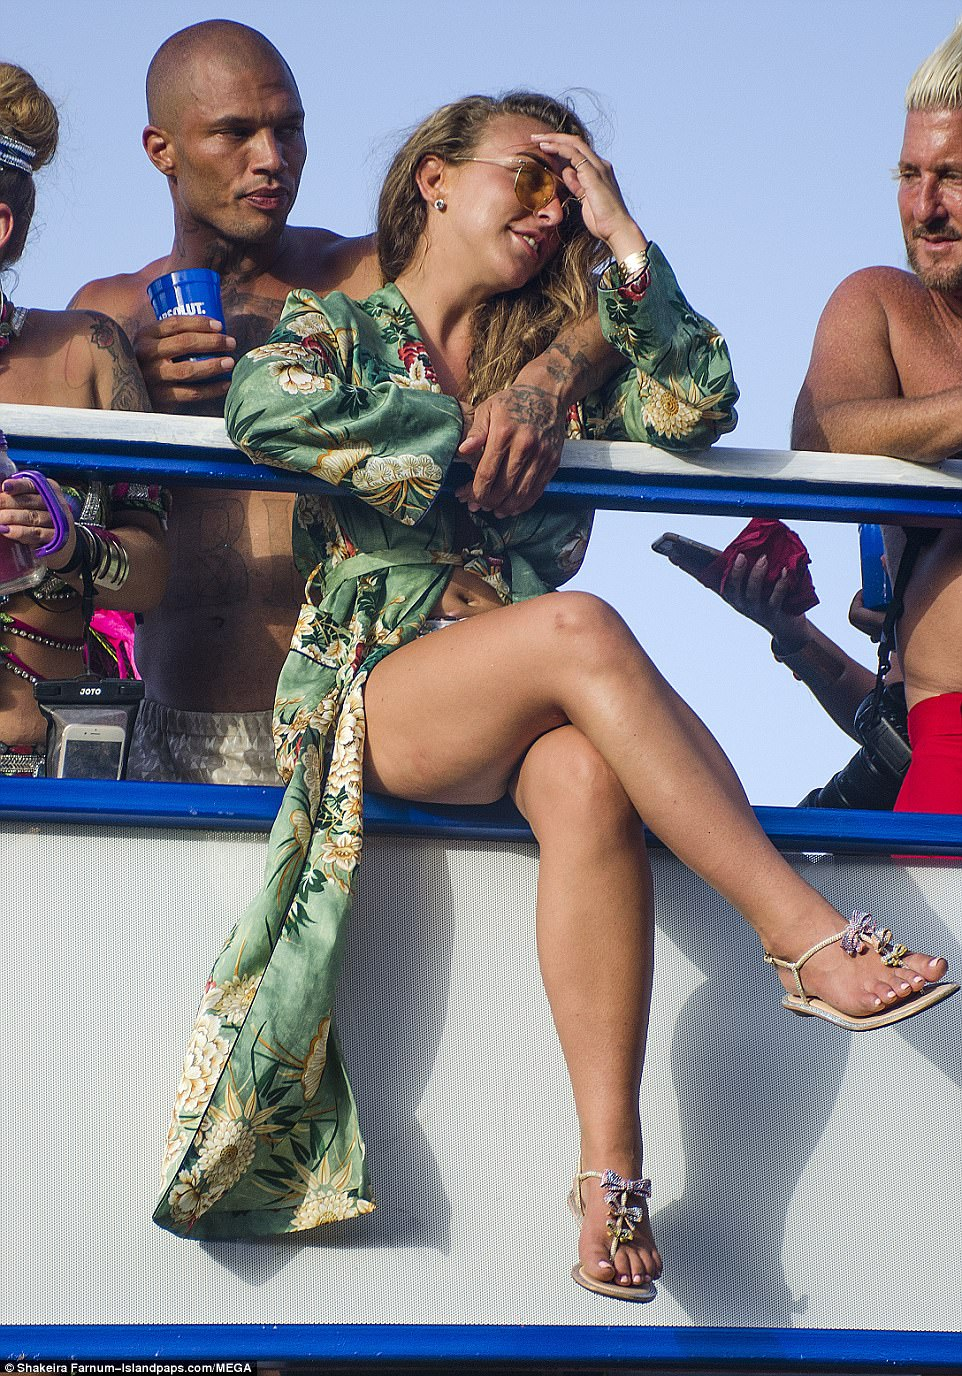 All eyes on me: Chloe later swapped her towering heels for comfy sandals as she relaxed